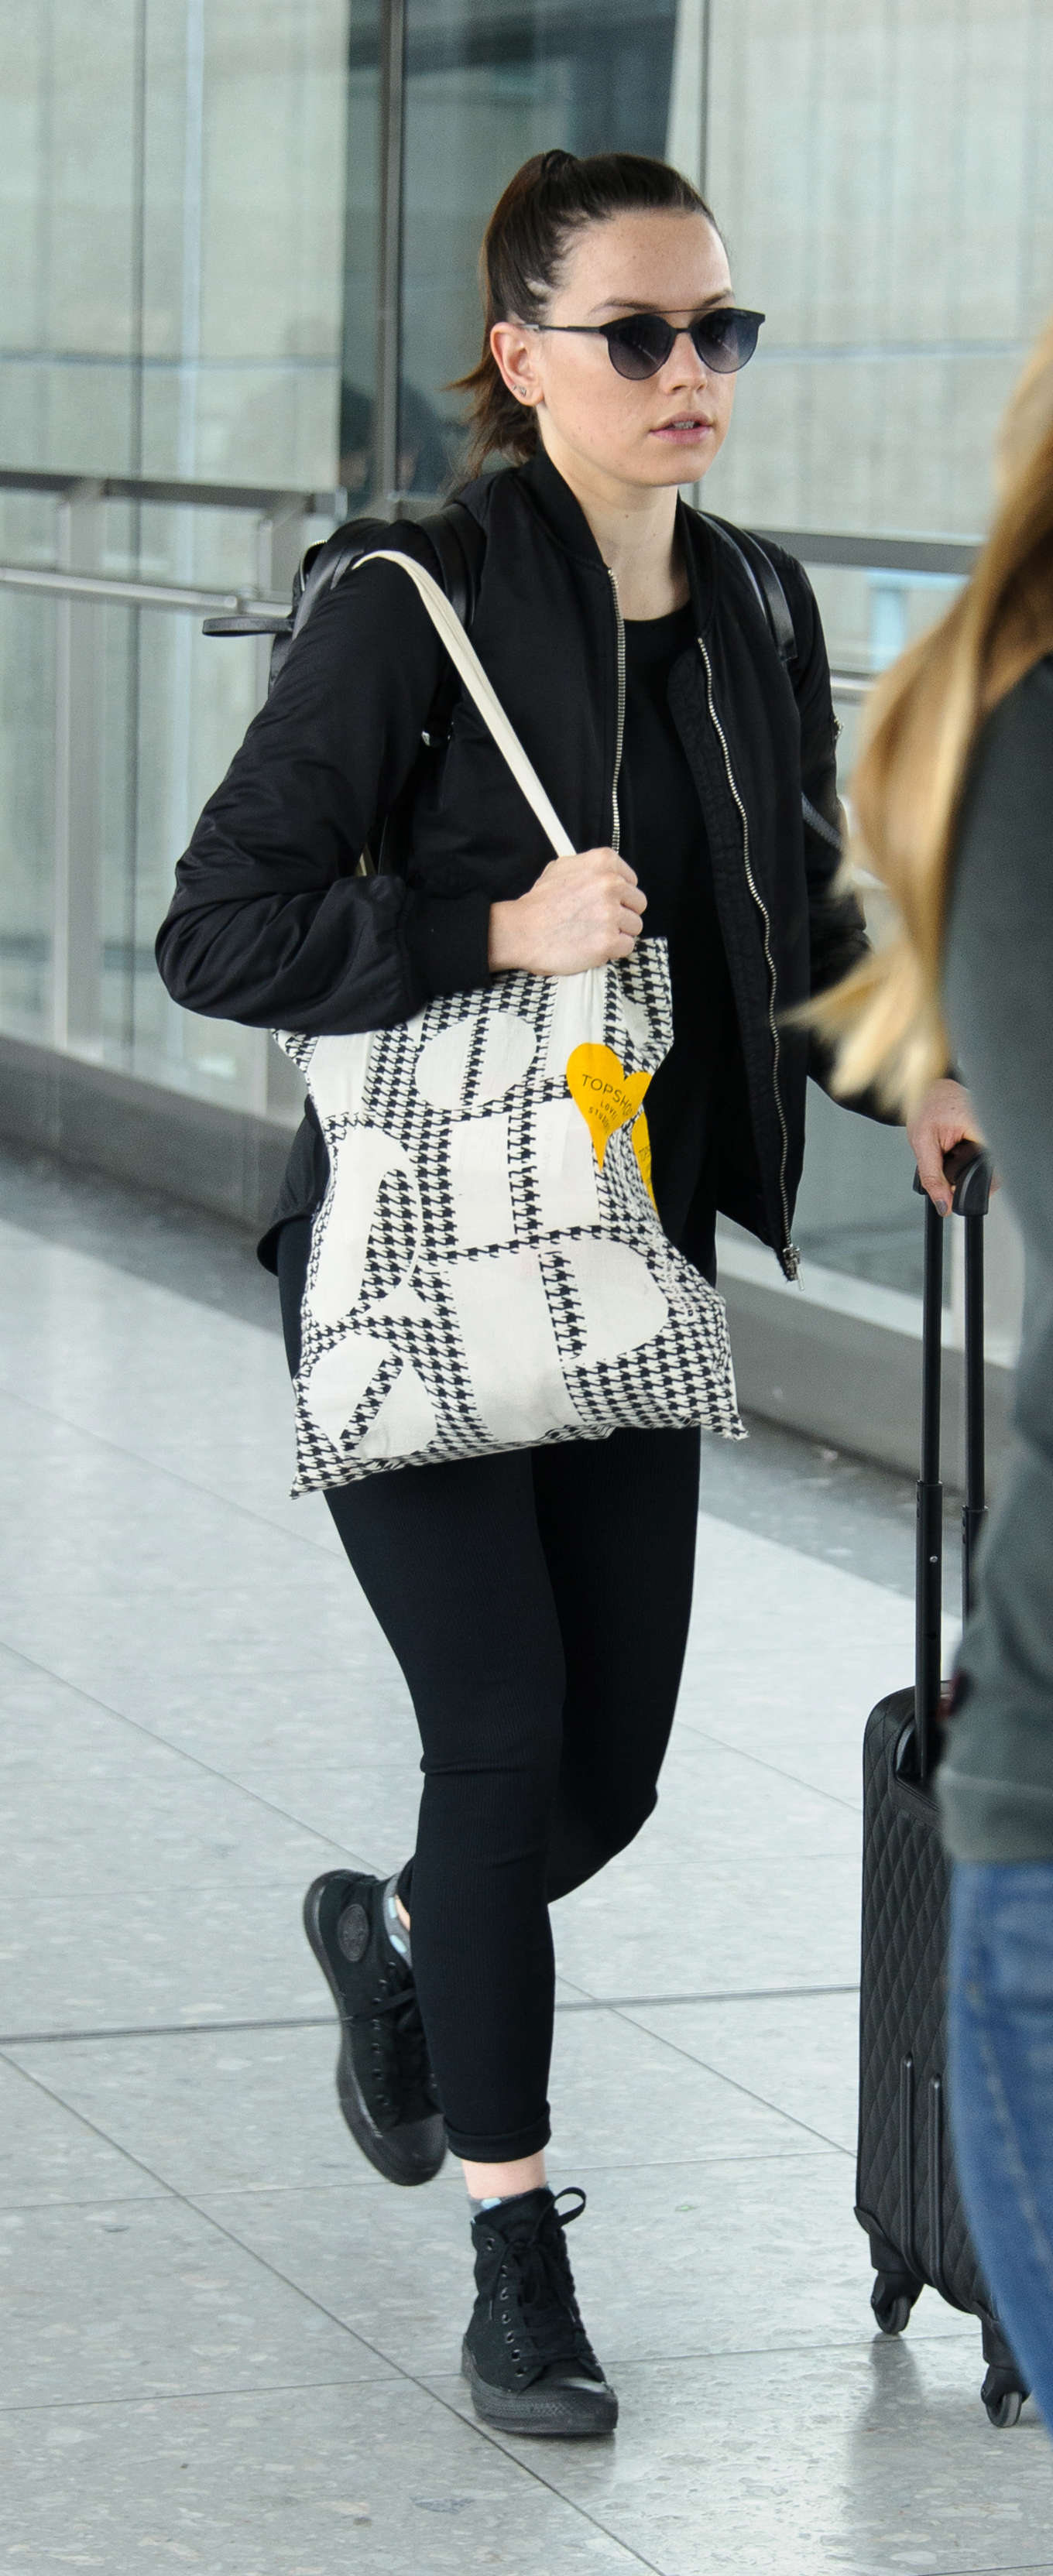 Daisy Ridley Heathrow Airport in London